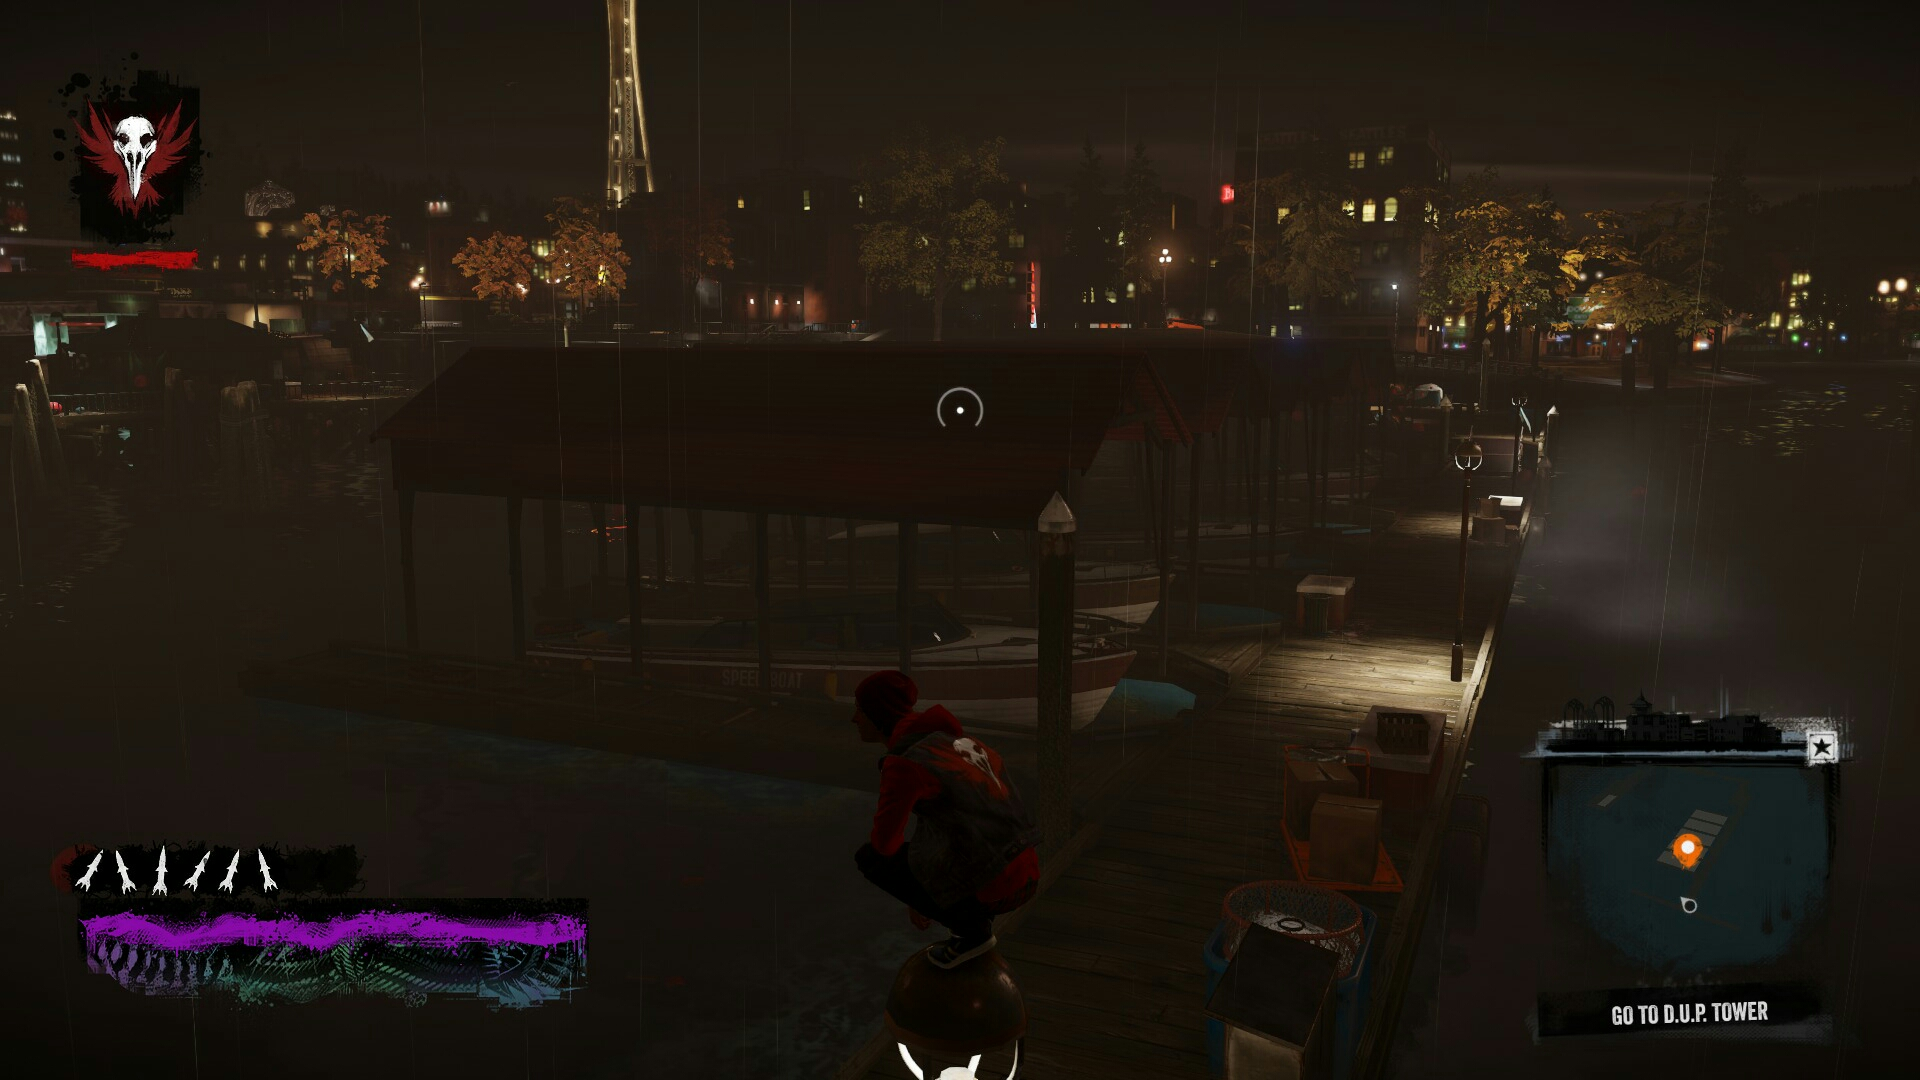 infamous-ss-night-9